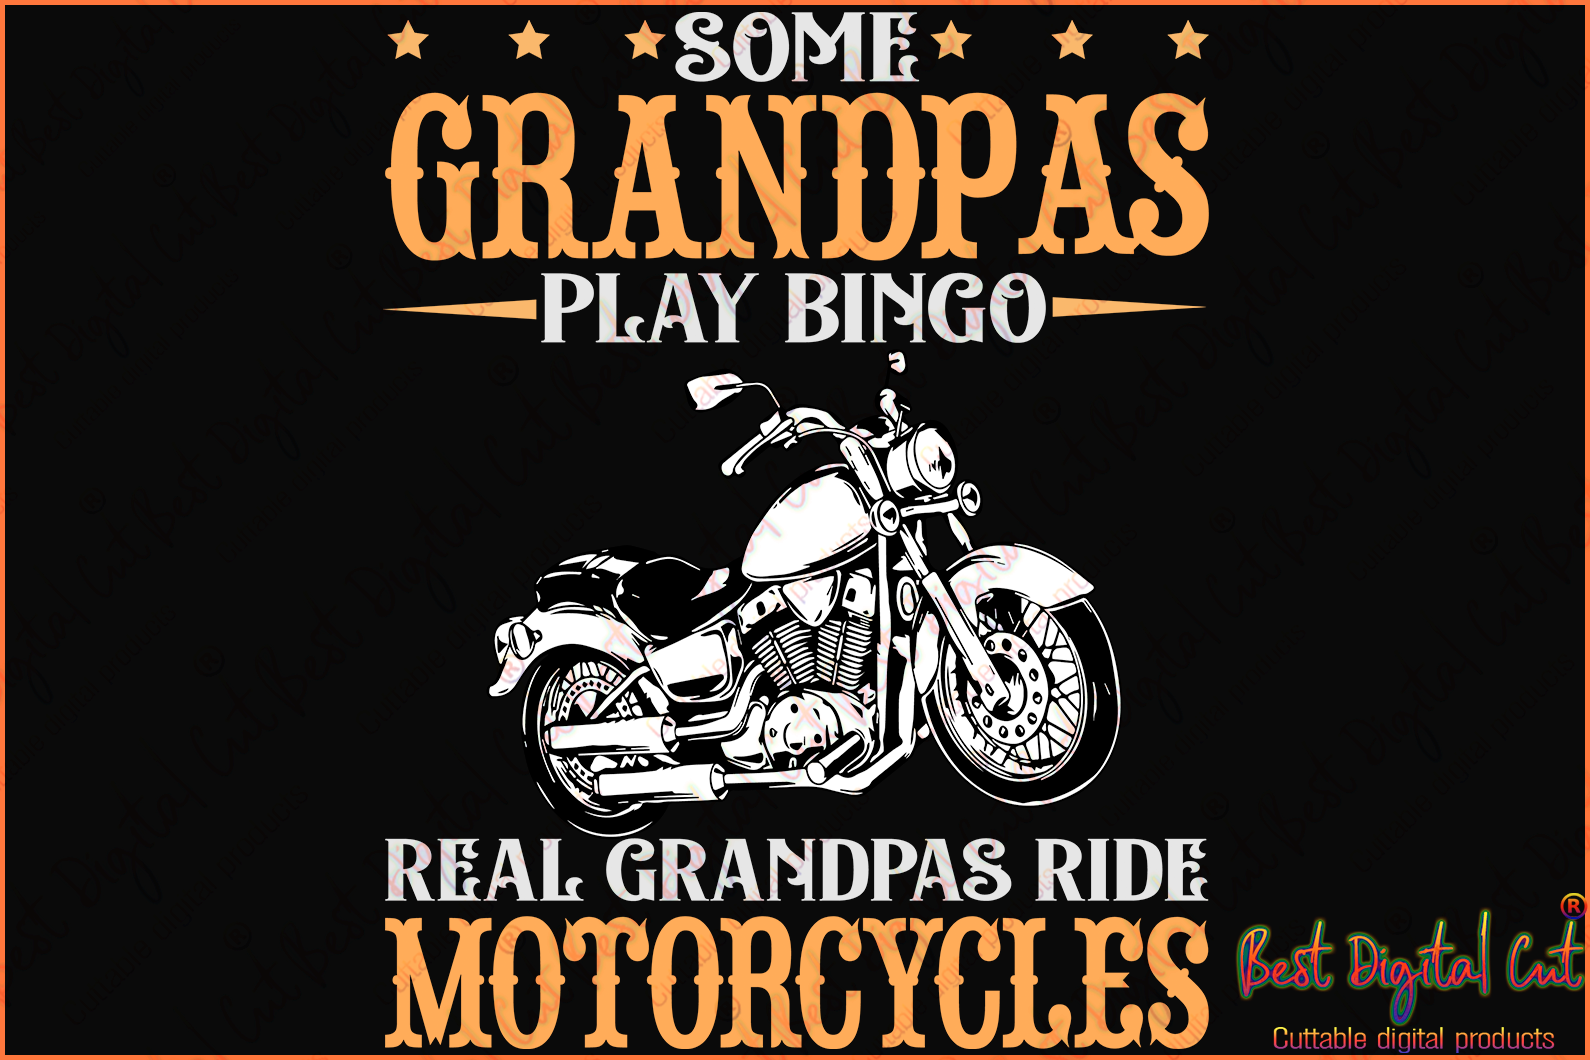 Some grandpas play bingo svg,real grandpa svg,ride motorcycles svg,grandpa life svg,father's day shirt men,birthday tshirt,summer tops,beach tshirt,silhouette svg, cricut svg files, decal and vinyl,